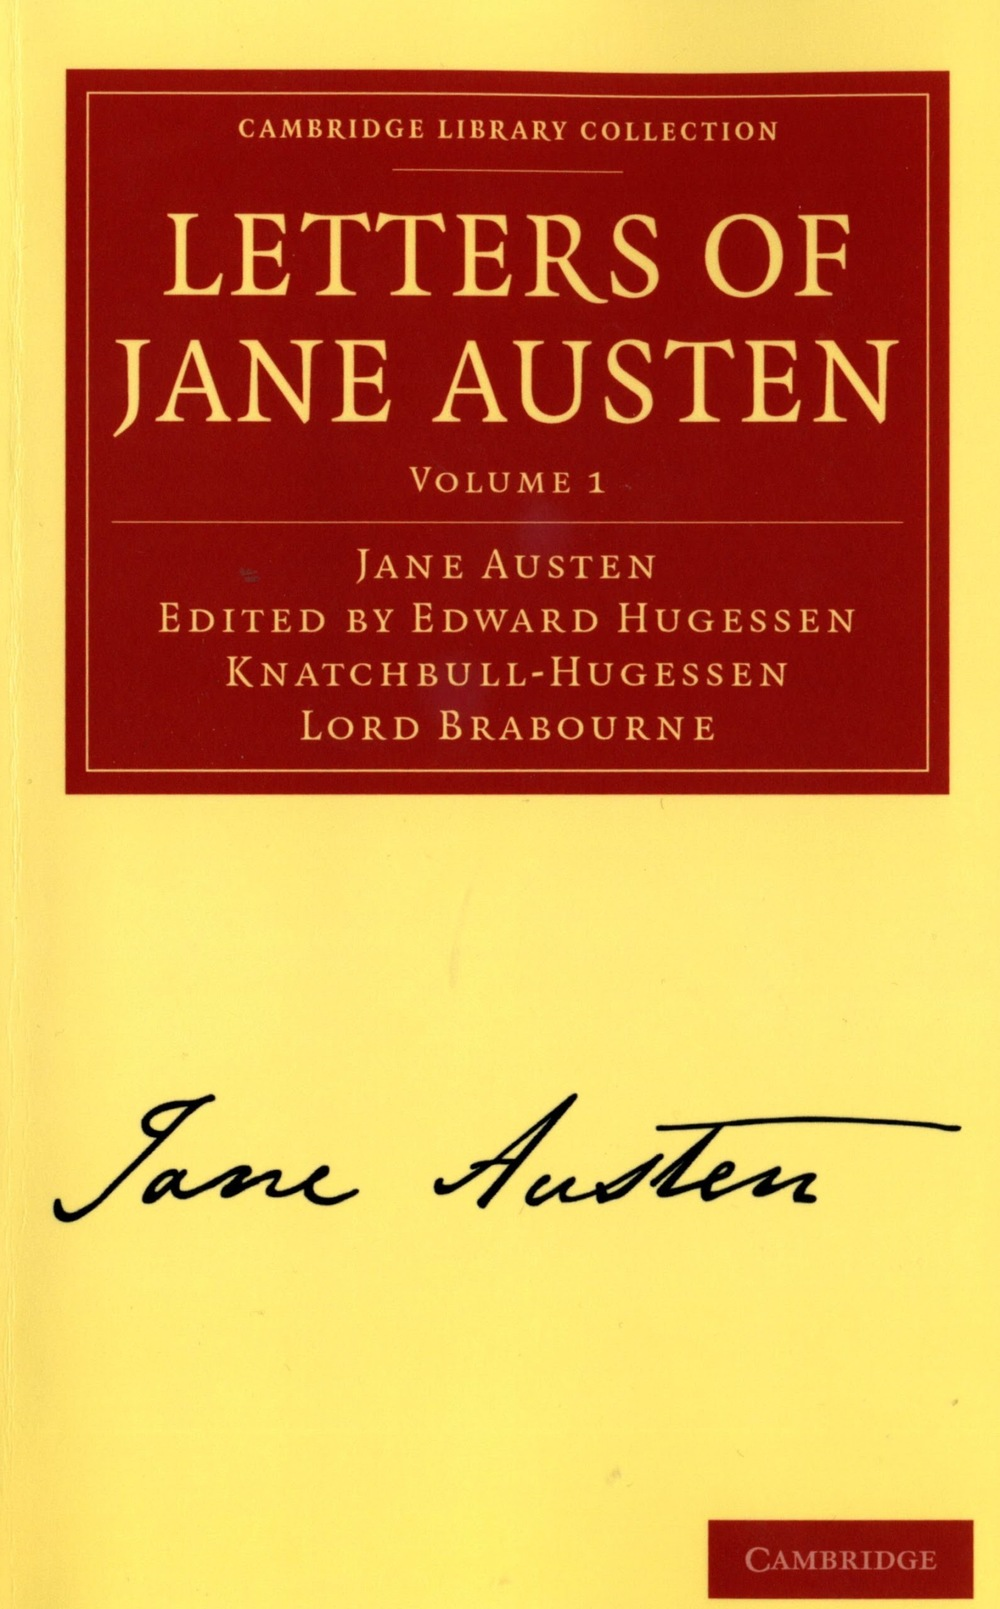 The Letters of Jane Austen.jpg